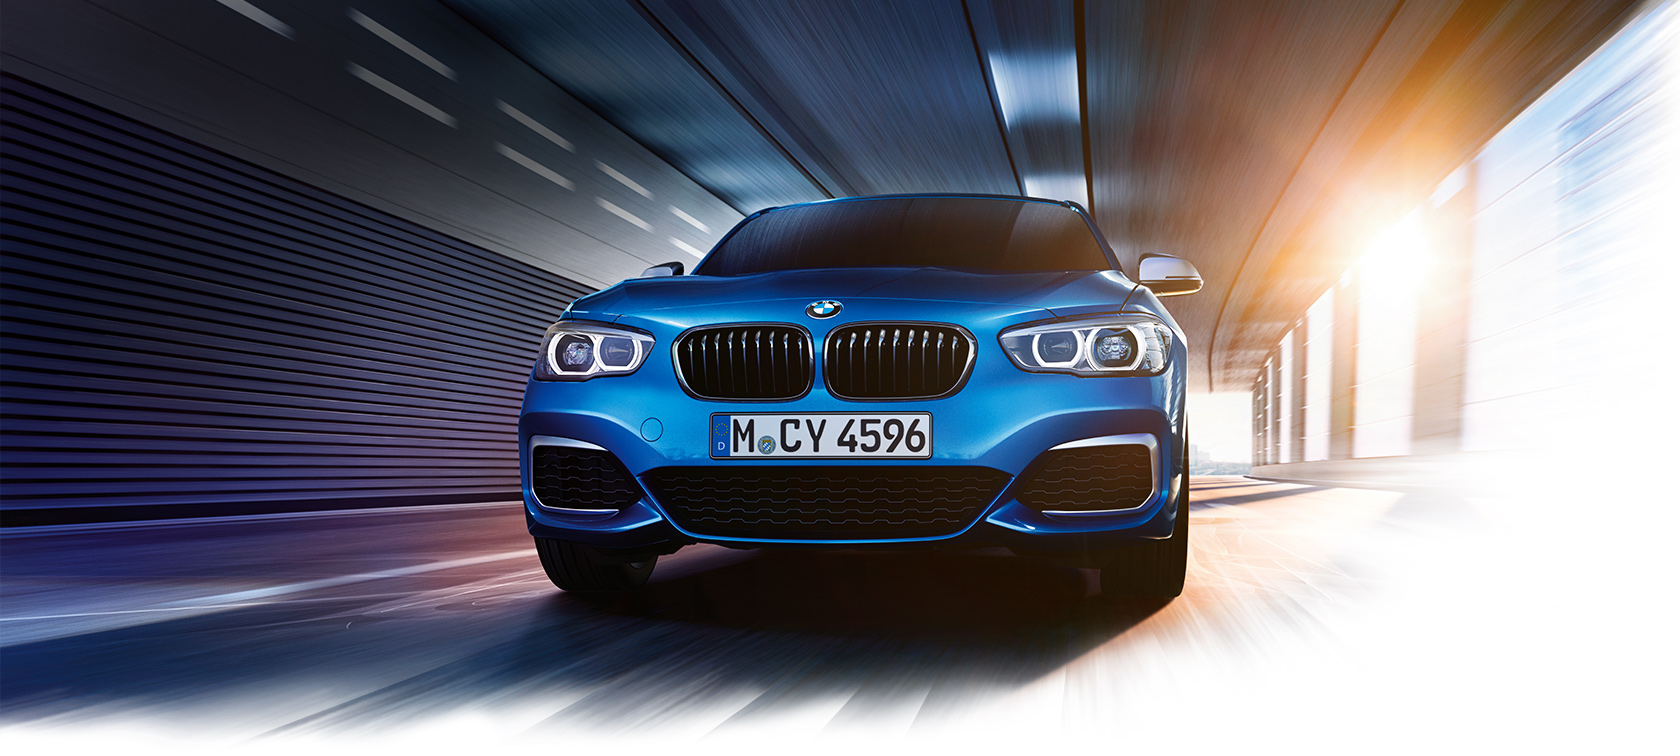 The BMW 1 Series.